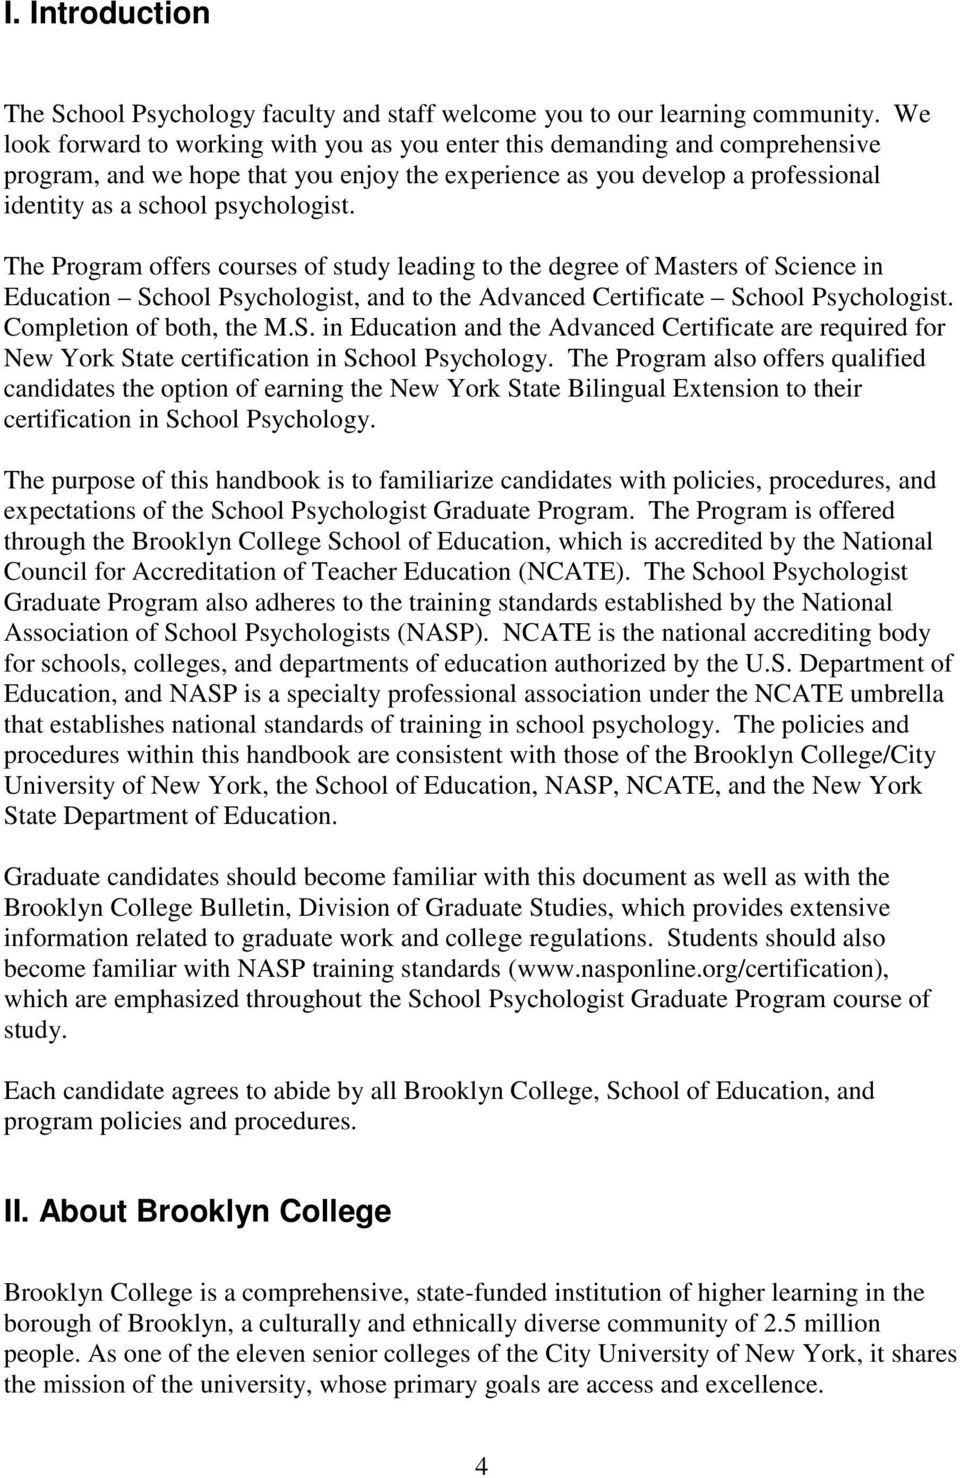 The Program offers courses of study leading to the degree of Masters of Science in Education School Psychologist, and to the Advanced Certificate School Psychologist. Completion of both, the M.S. in Education and the Advanced Certificate are required for New York State certification in School Psychology.